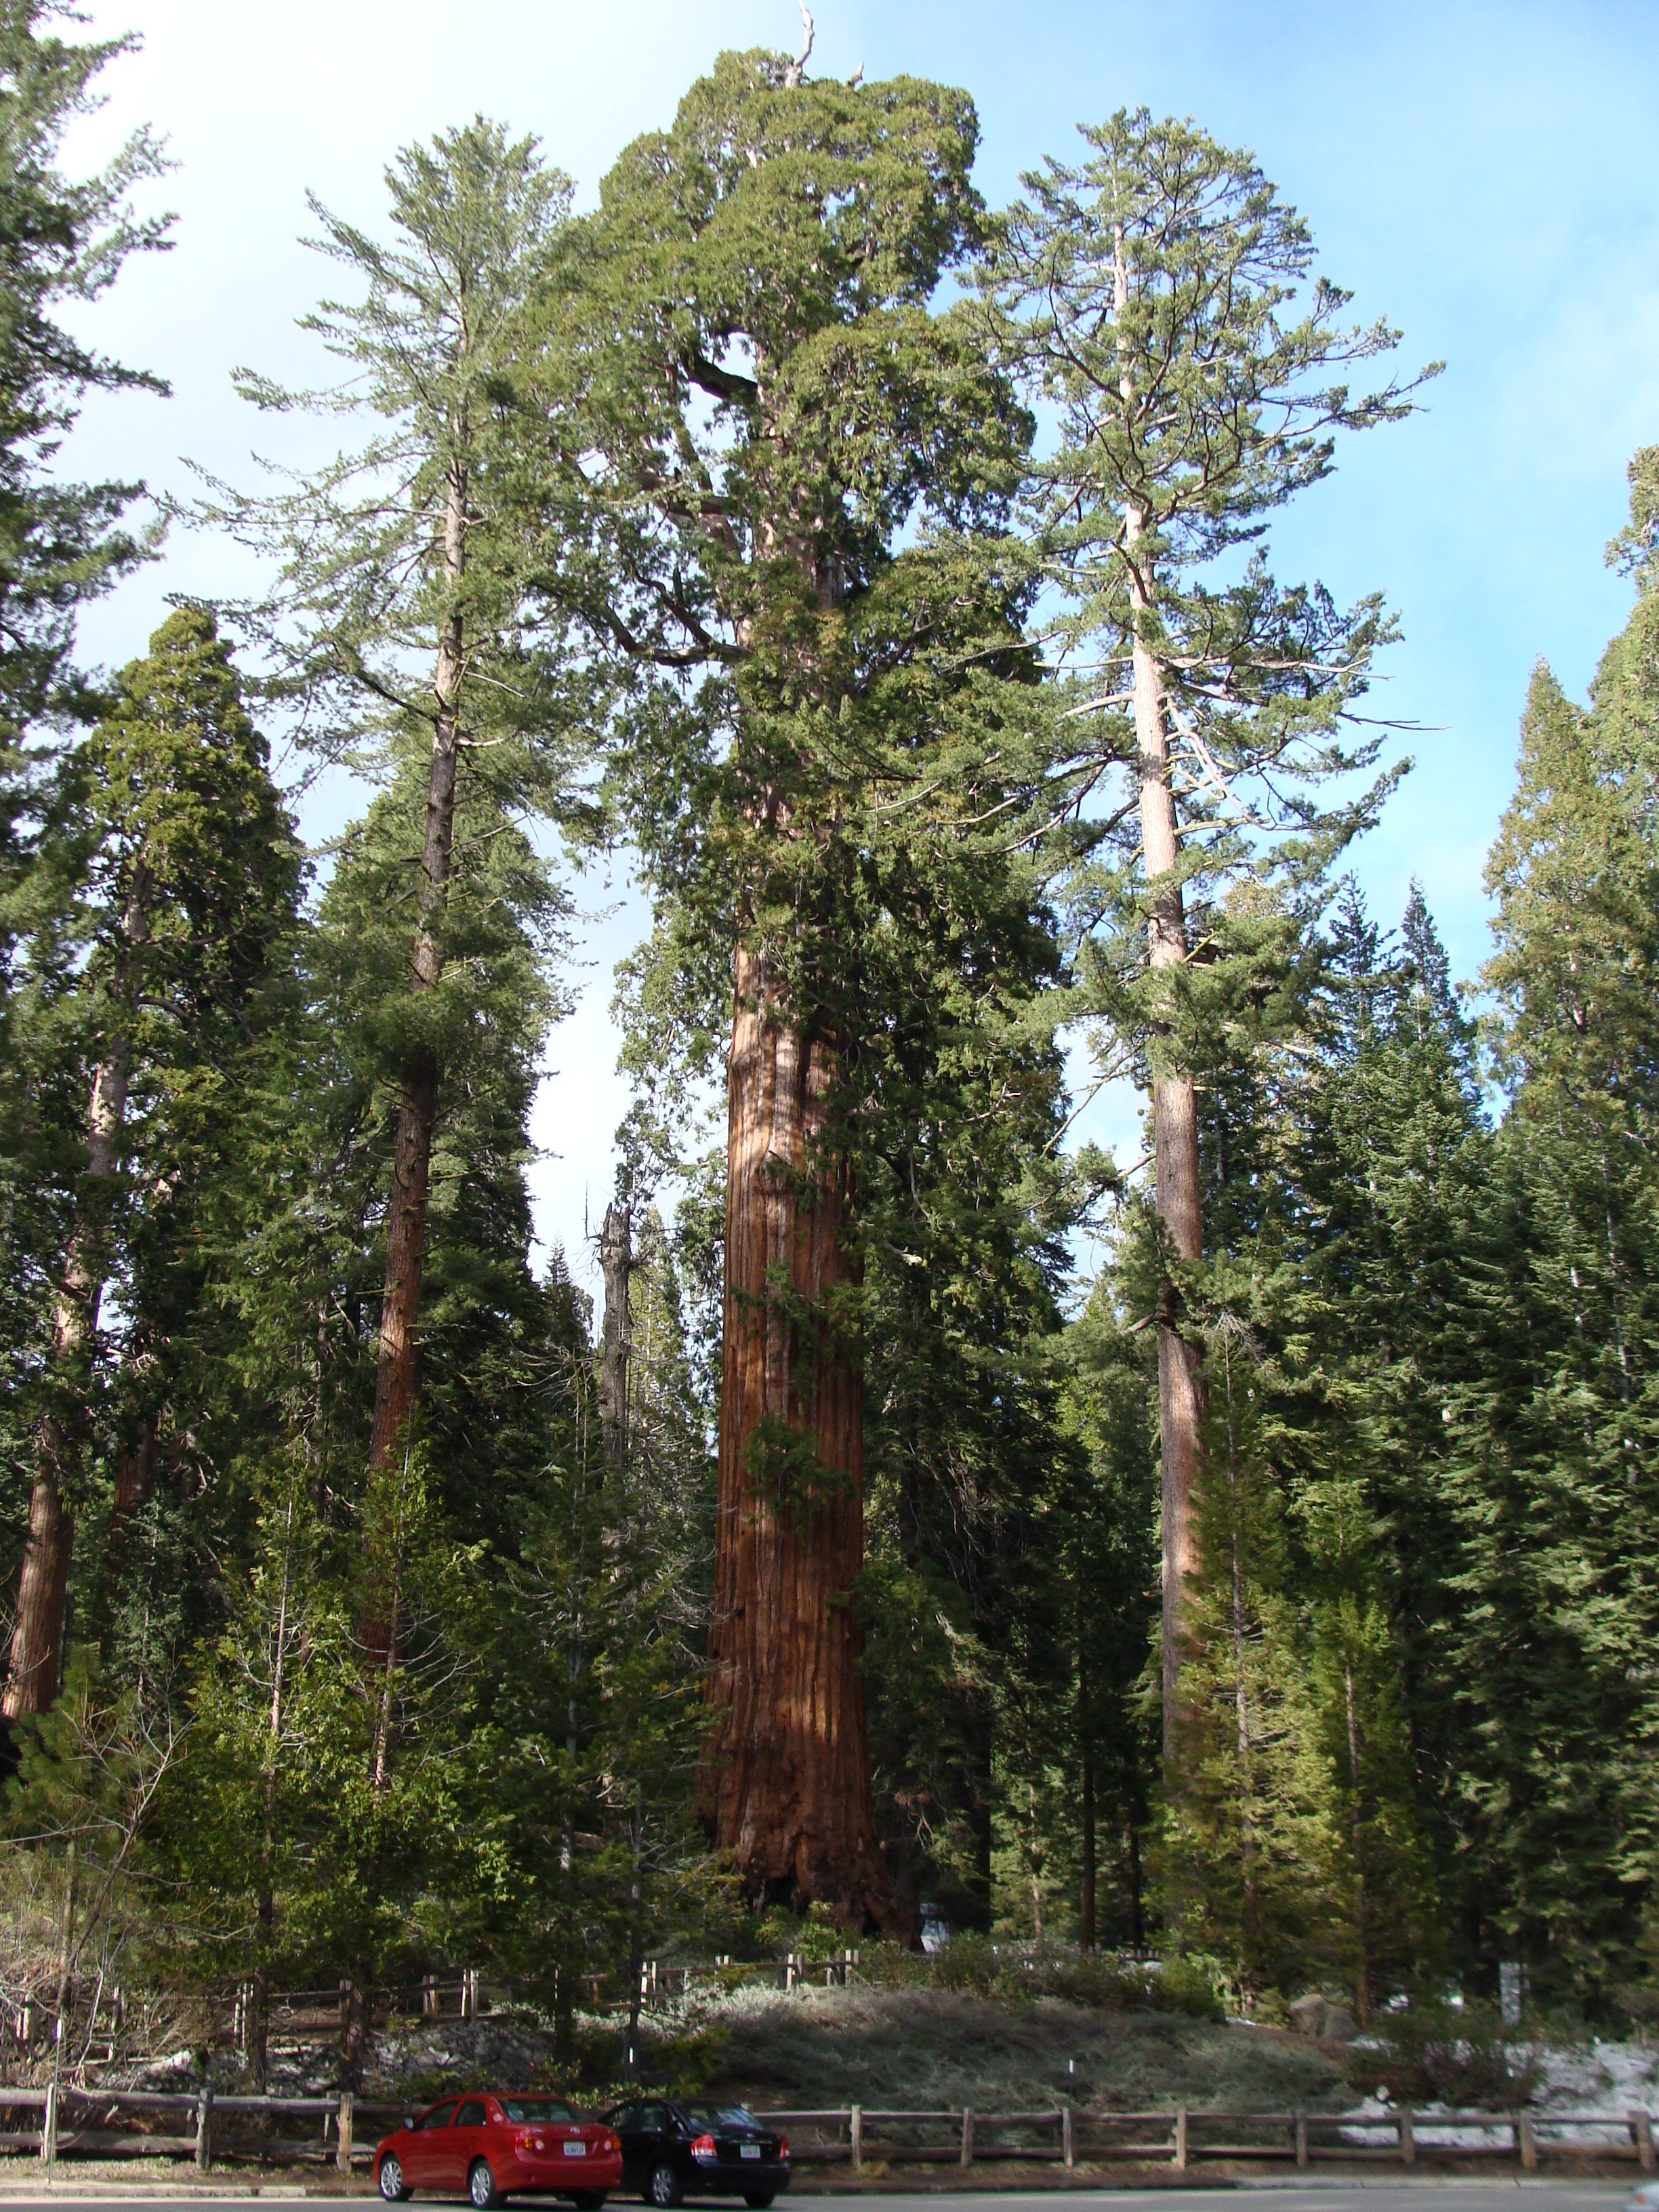 Sequoia National Park giant trees